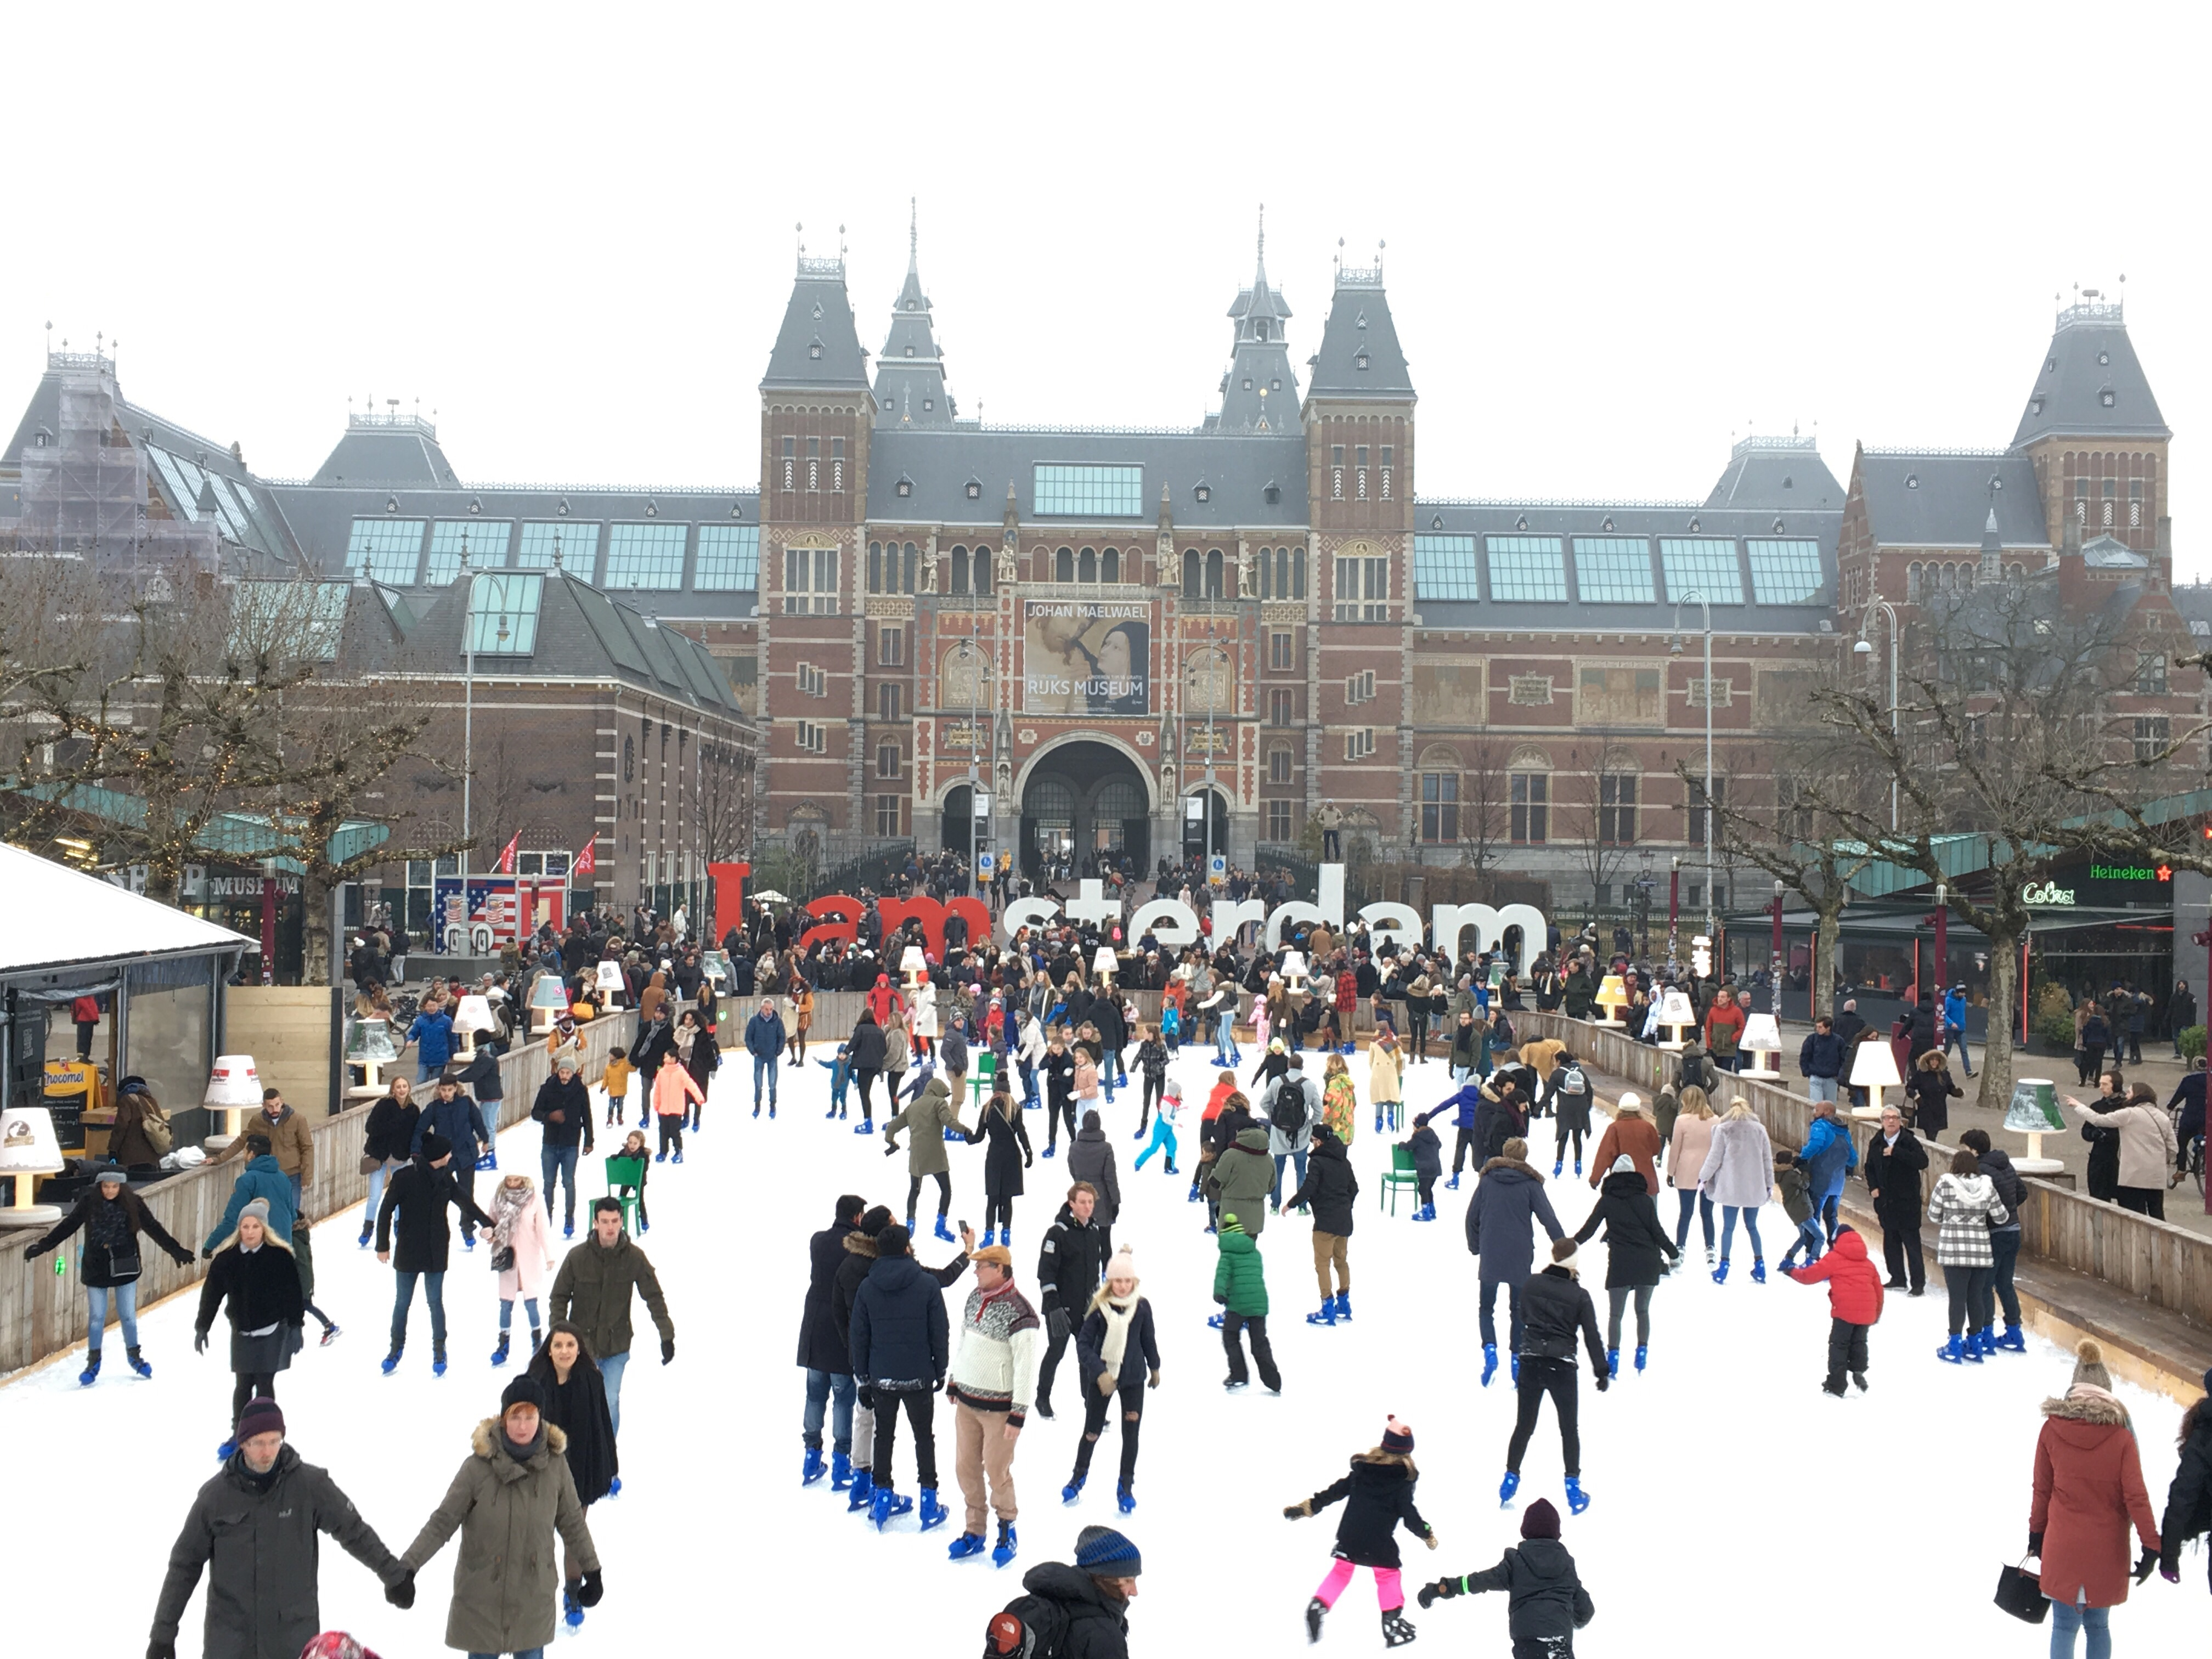 iamsterdam sign in front of the Rijksmuseum and skating rink in front of the square